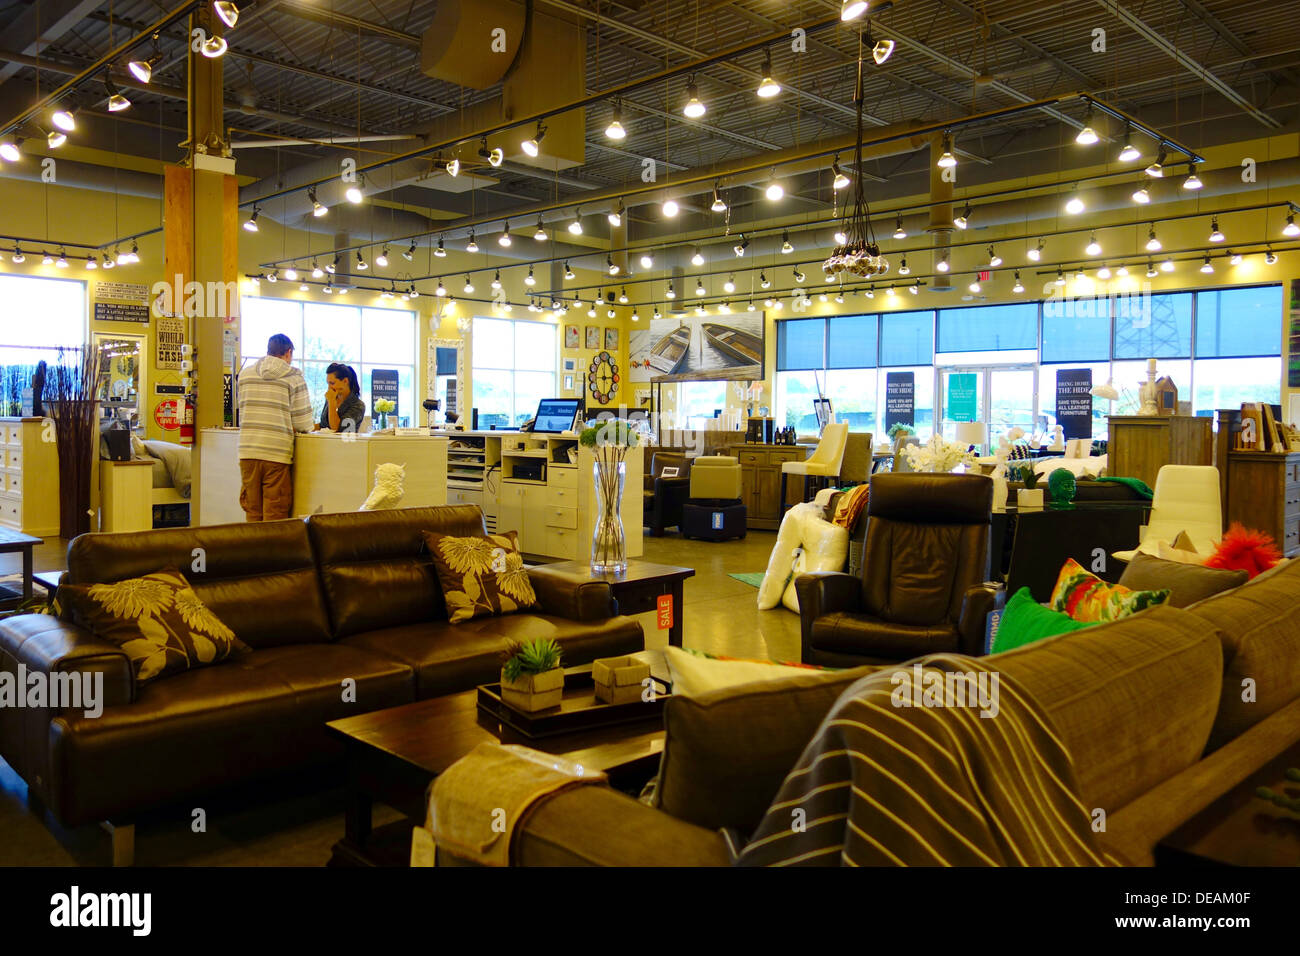 Urban Barn Furniture Store In Richmond Hill, Canada